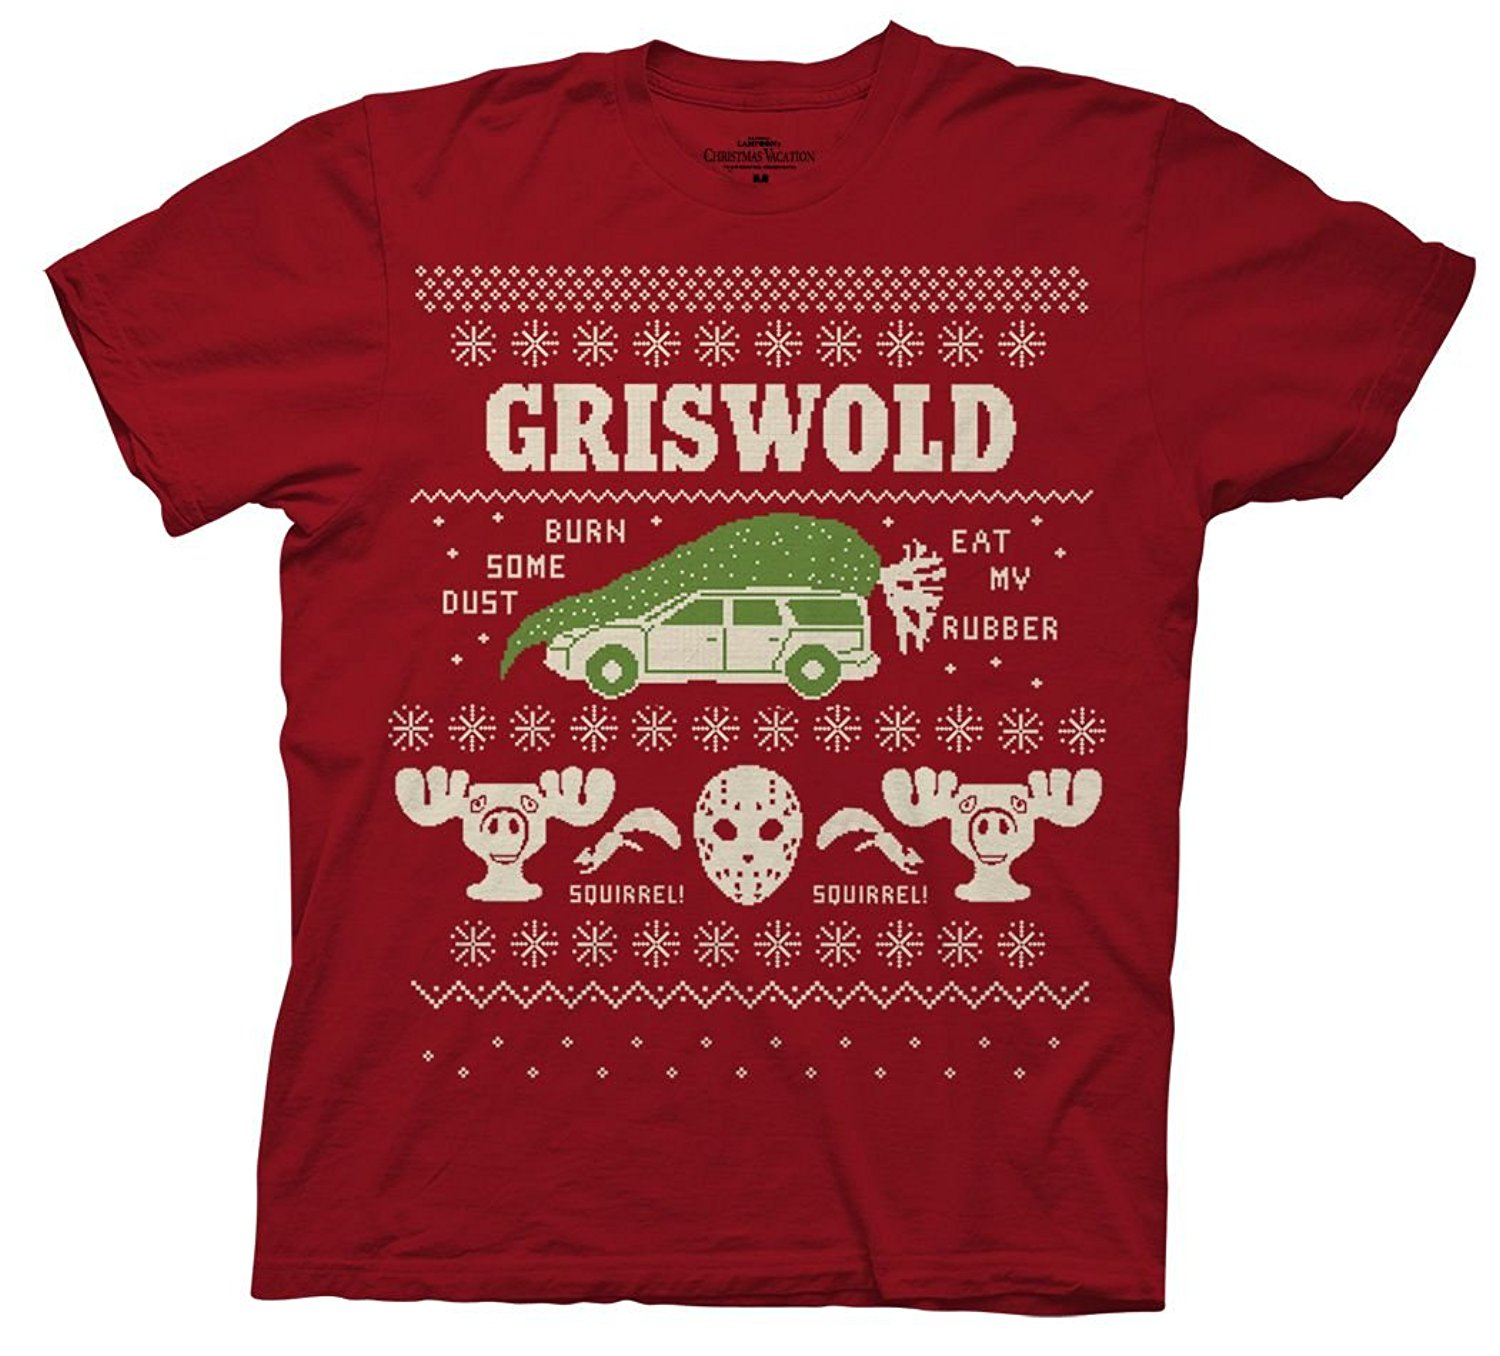 Gildan National Lampoons Christmas Vacation Griswold Burn Dust Adult T-shirt